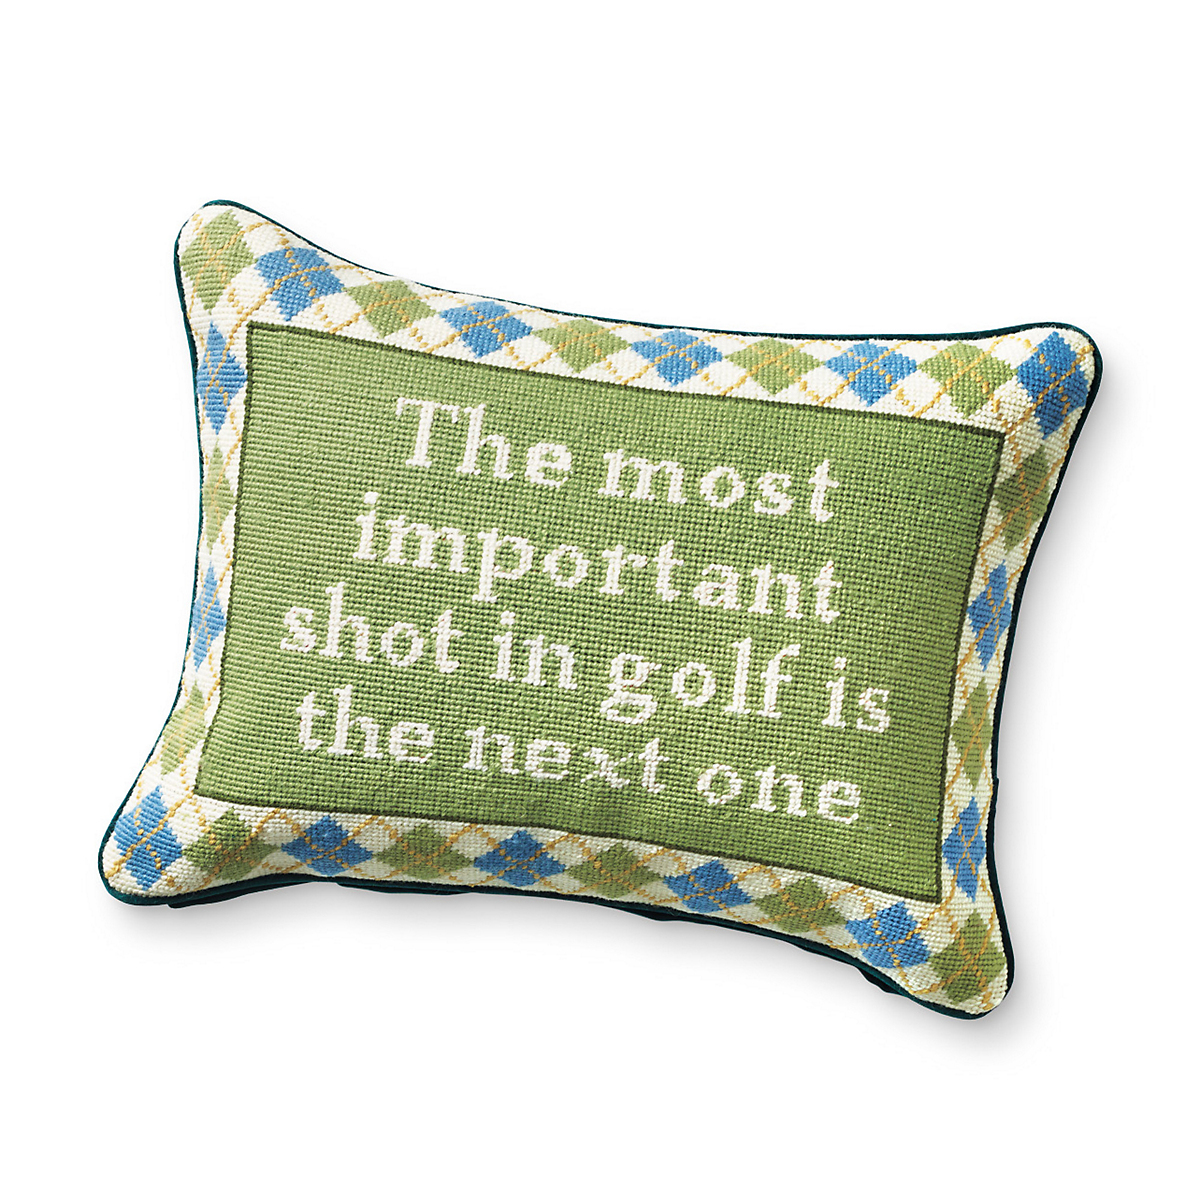 The Most Important Shot Pillow